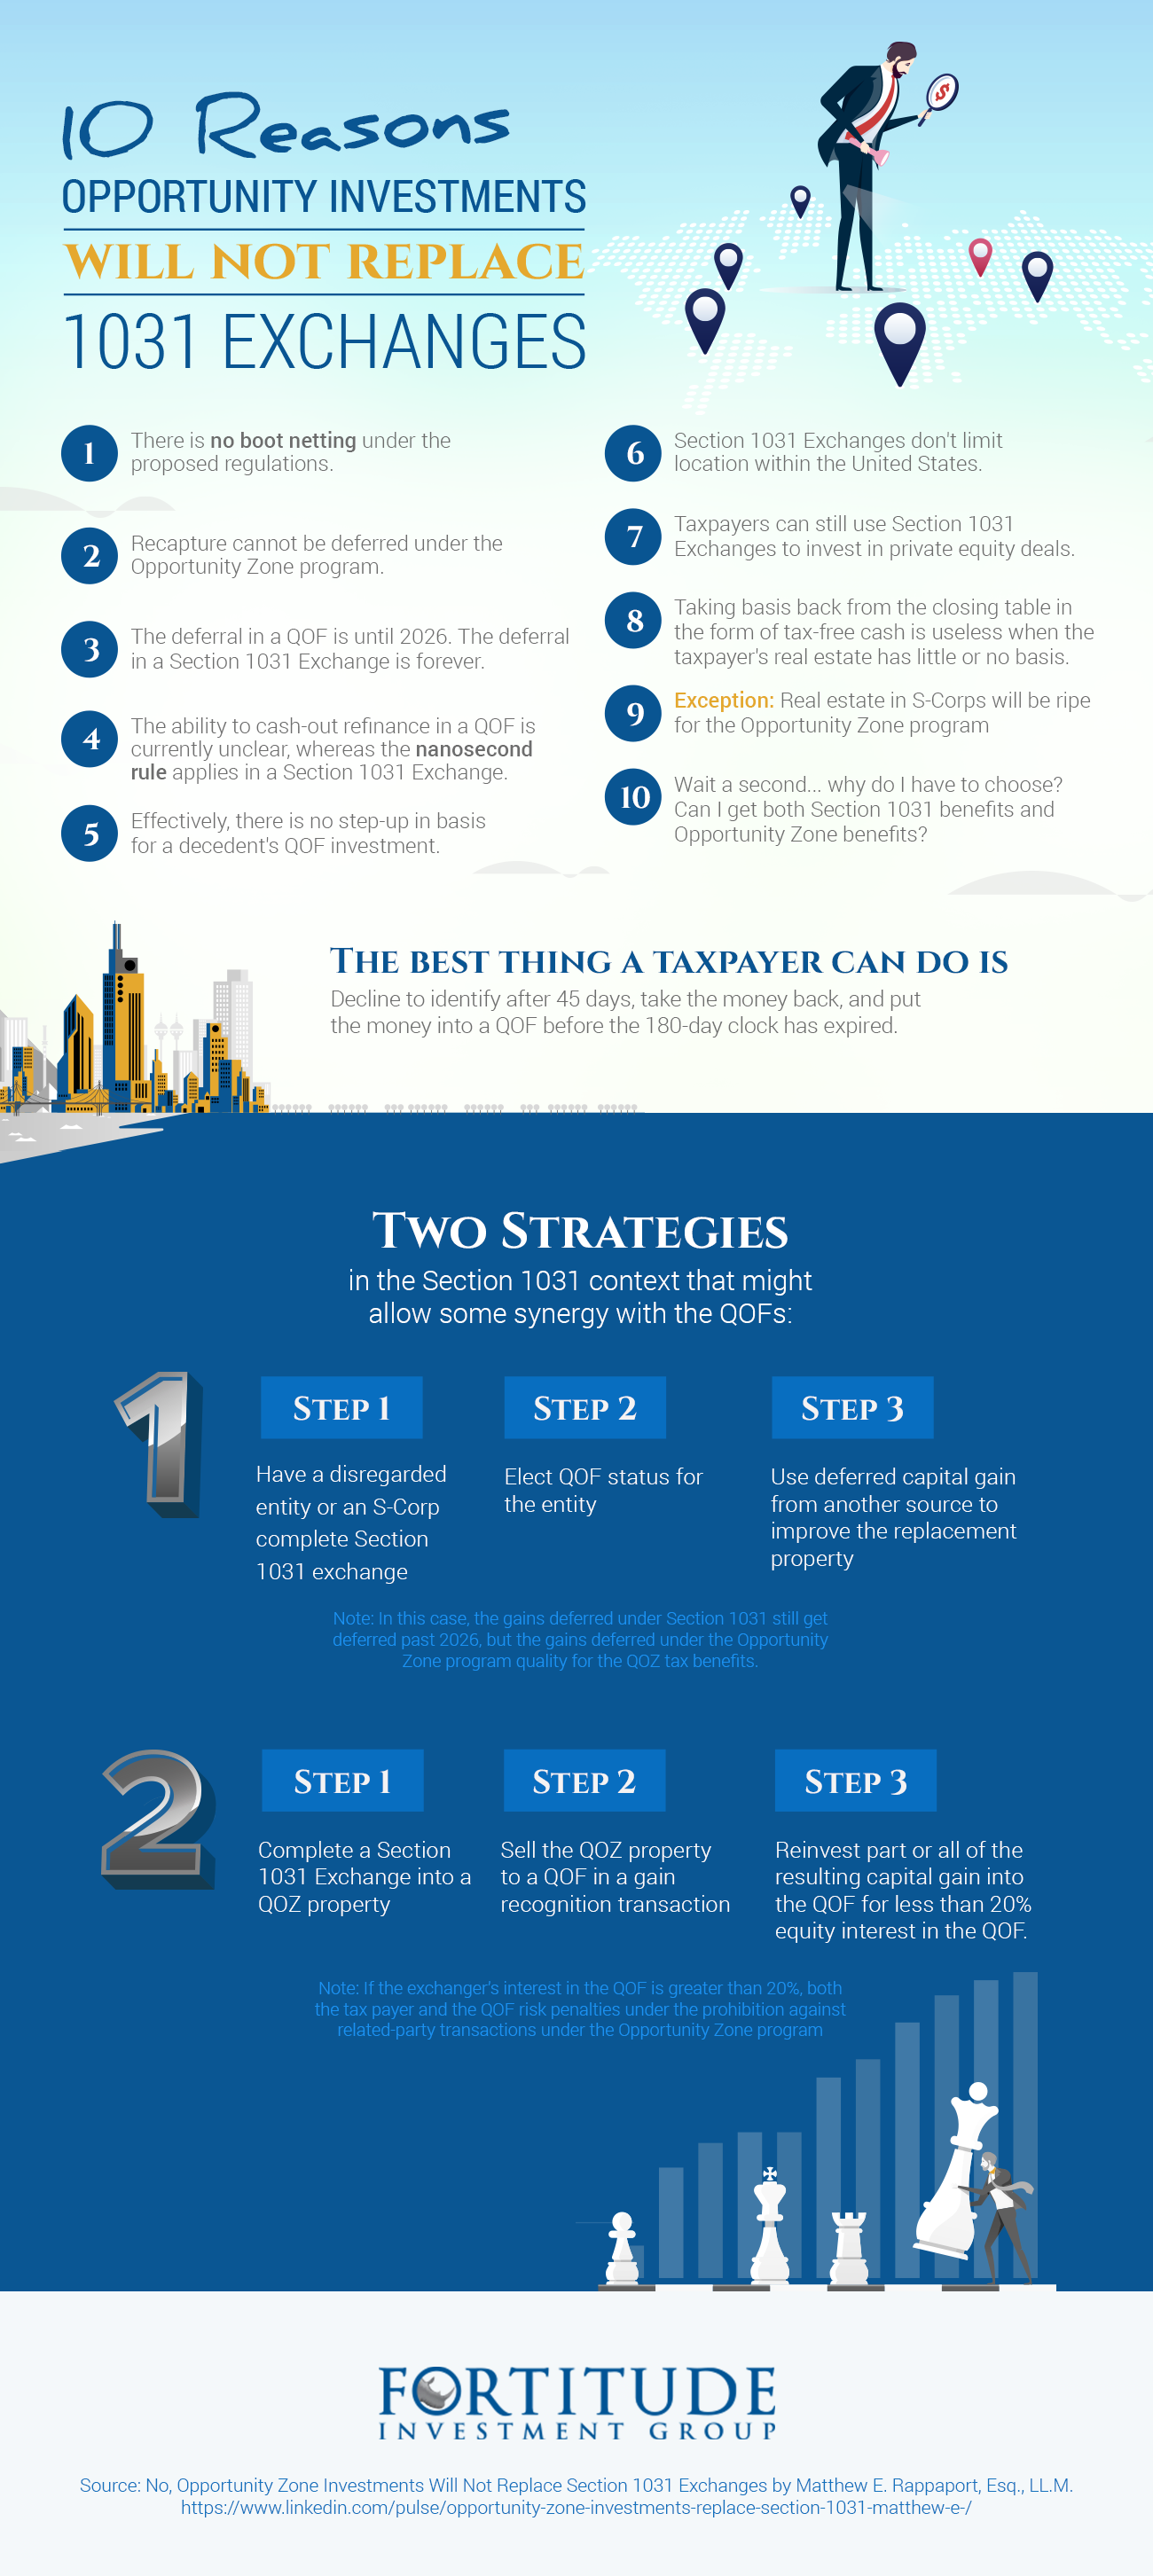 infograph-10-reasons-opportunity-zones-1031-exchanges